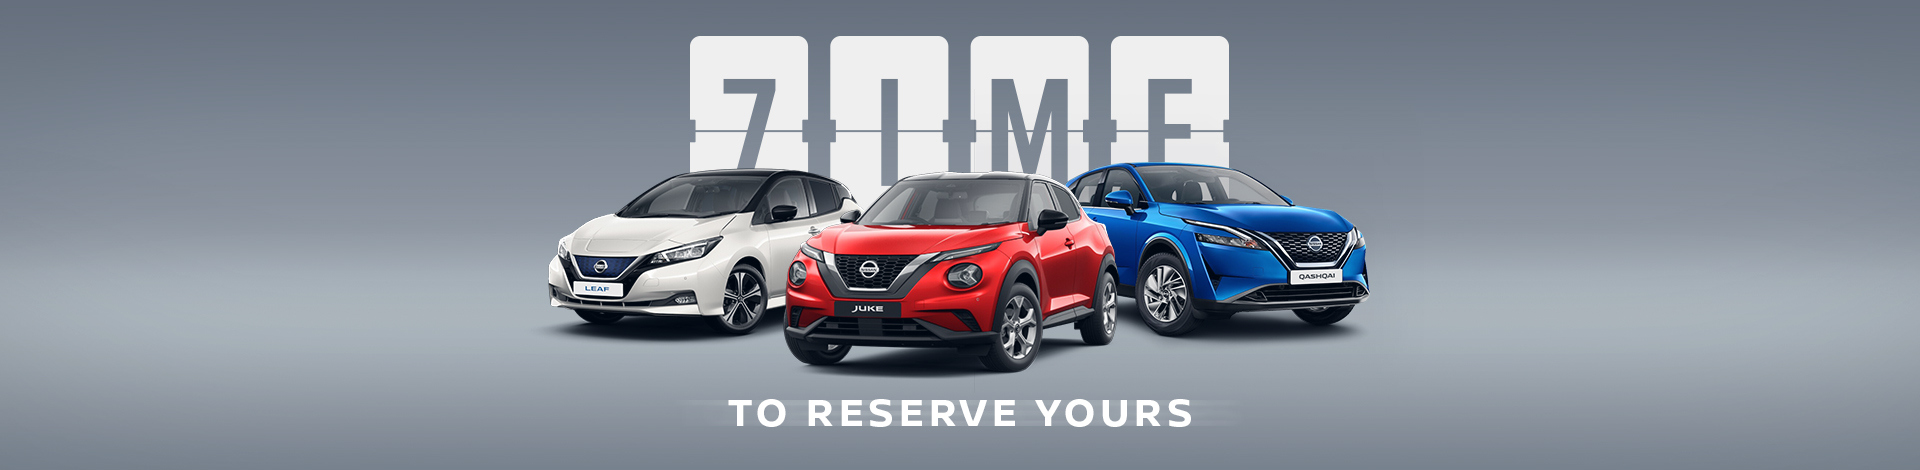 /nissan 71ME to reserve yours